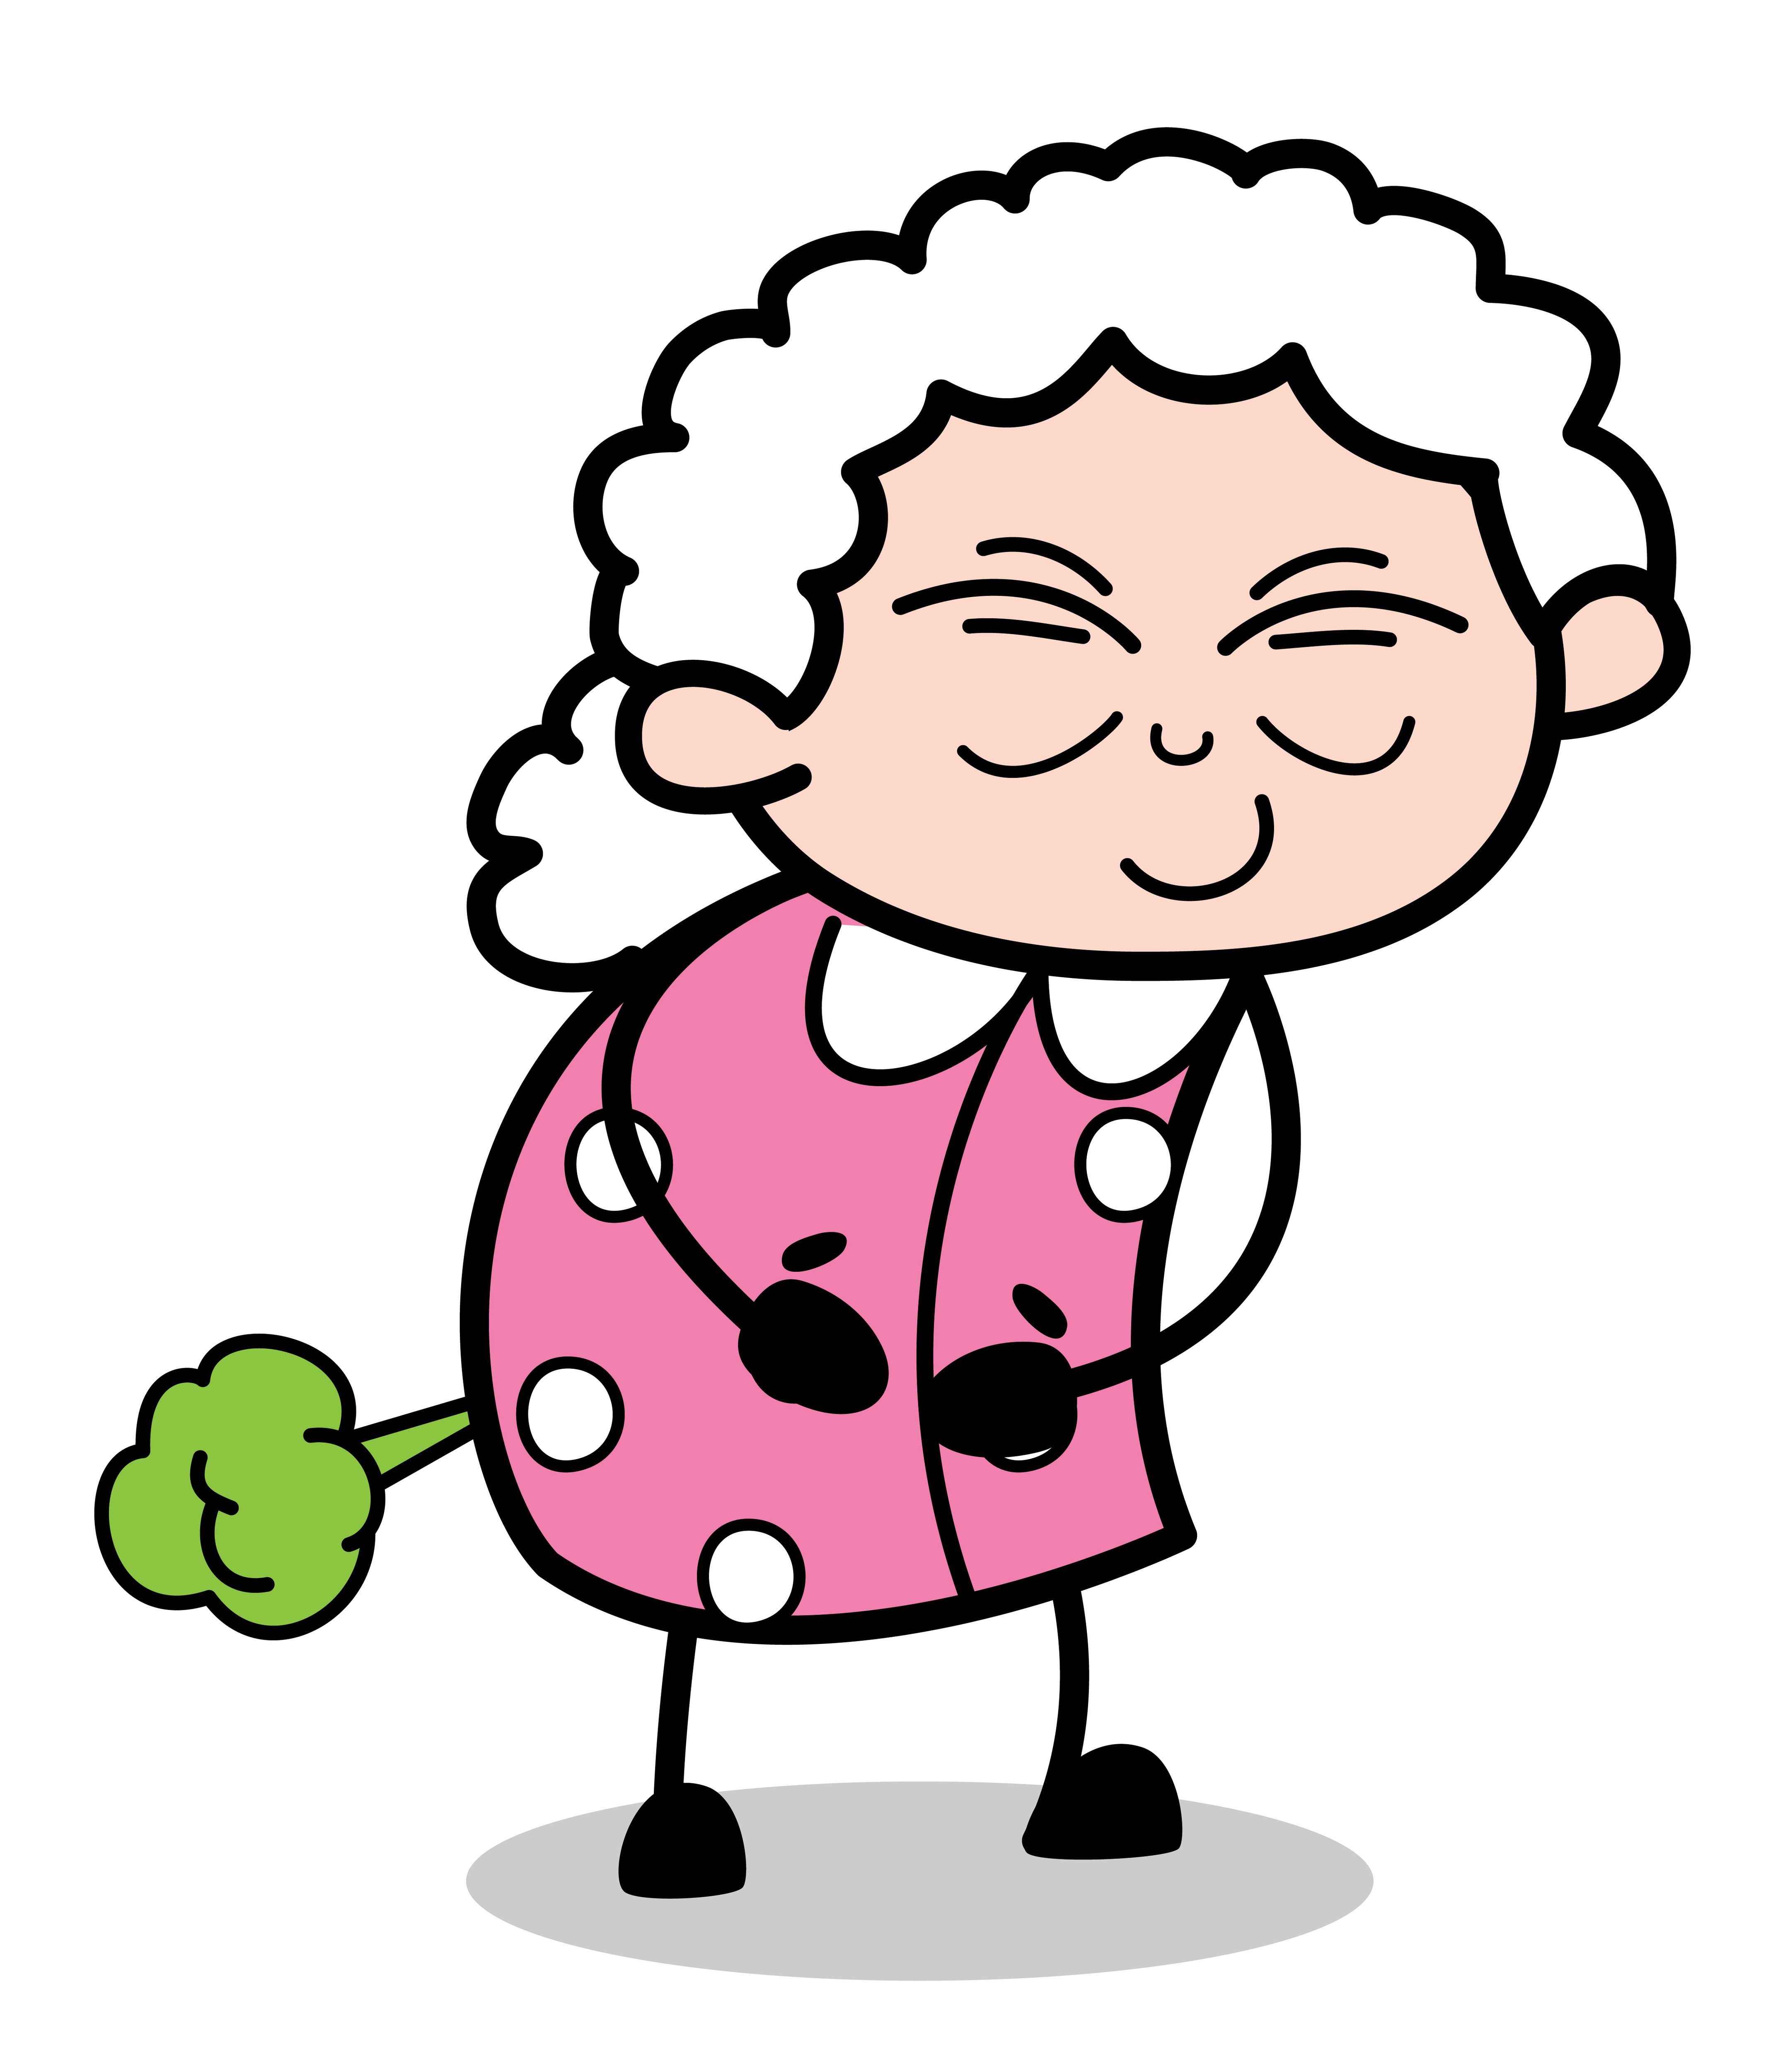 Old lady farts   Source: Shutterstock